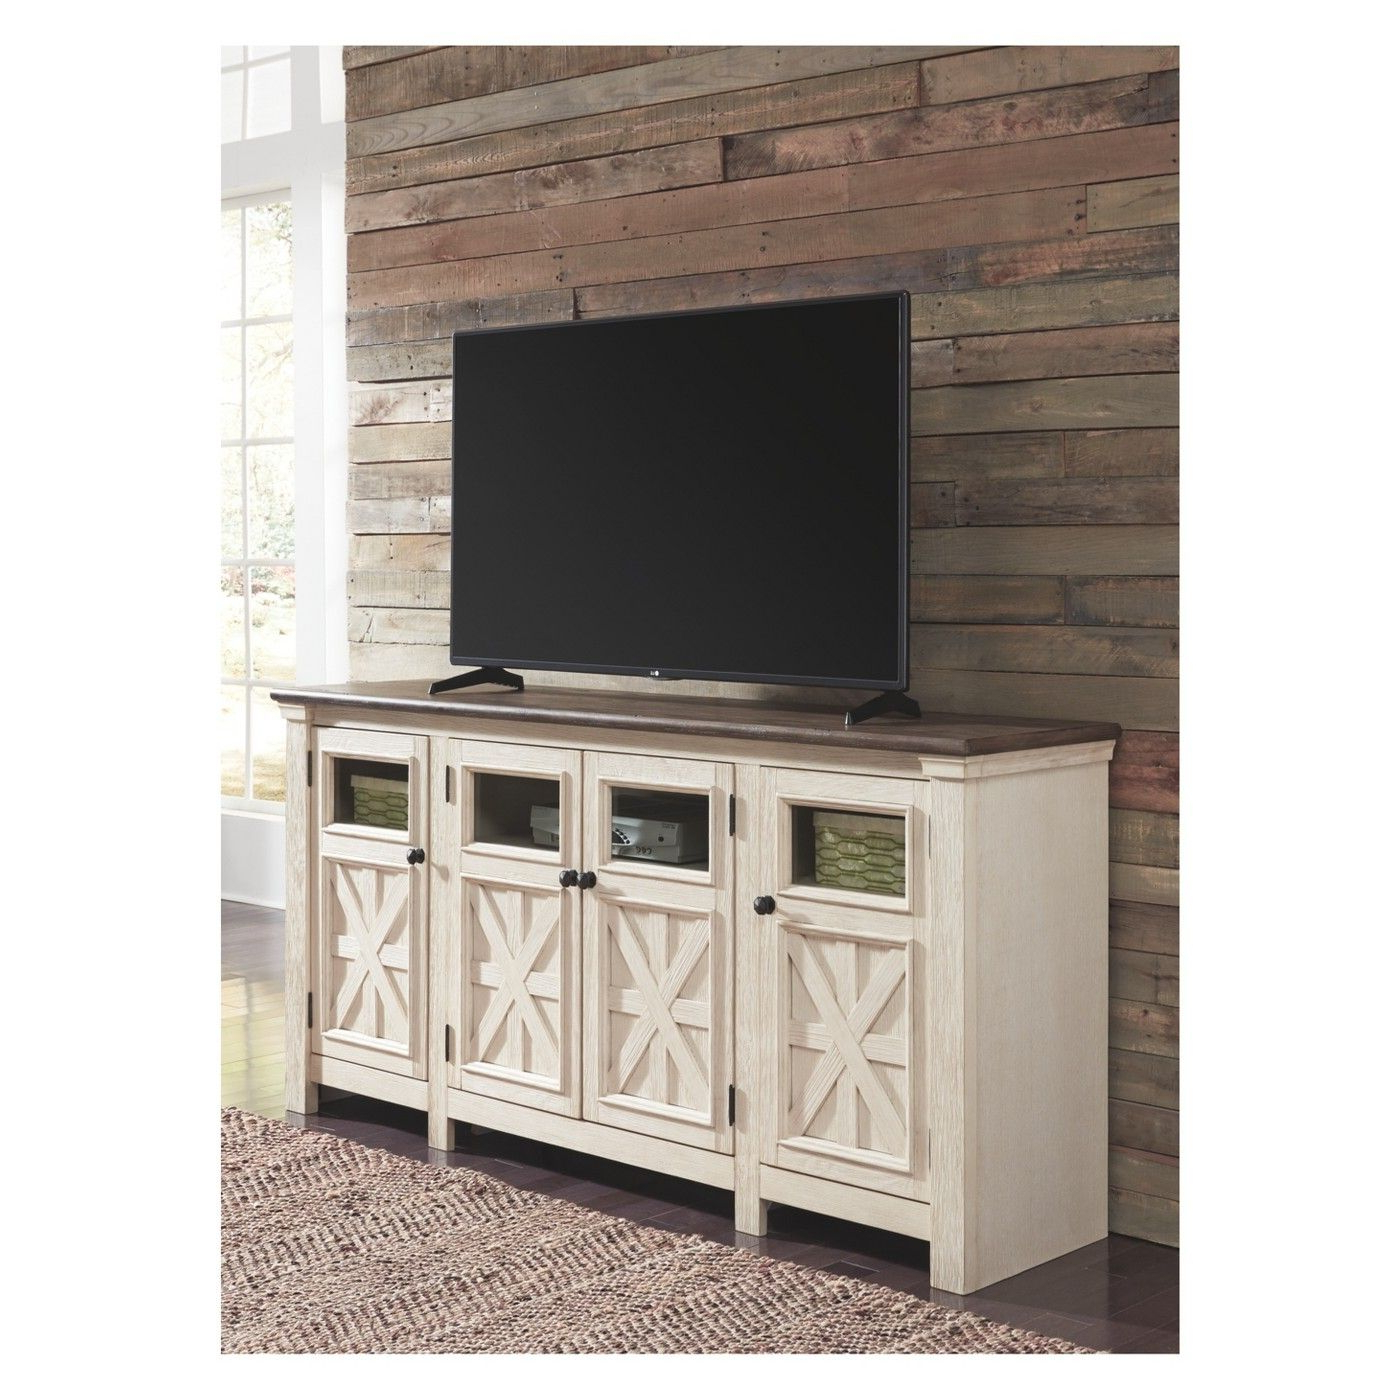 Chromium Extra Wide Tv Unit Stands Regarding Recent Bolanburg Extra Large Tv Stand Brown/white – Signature (View 2 of 10)